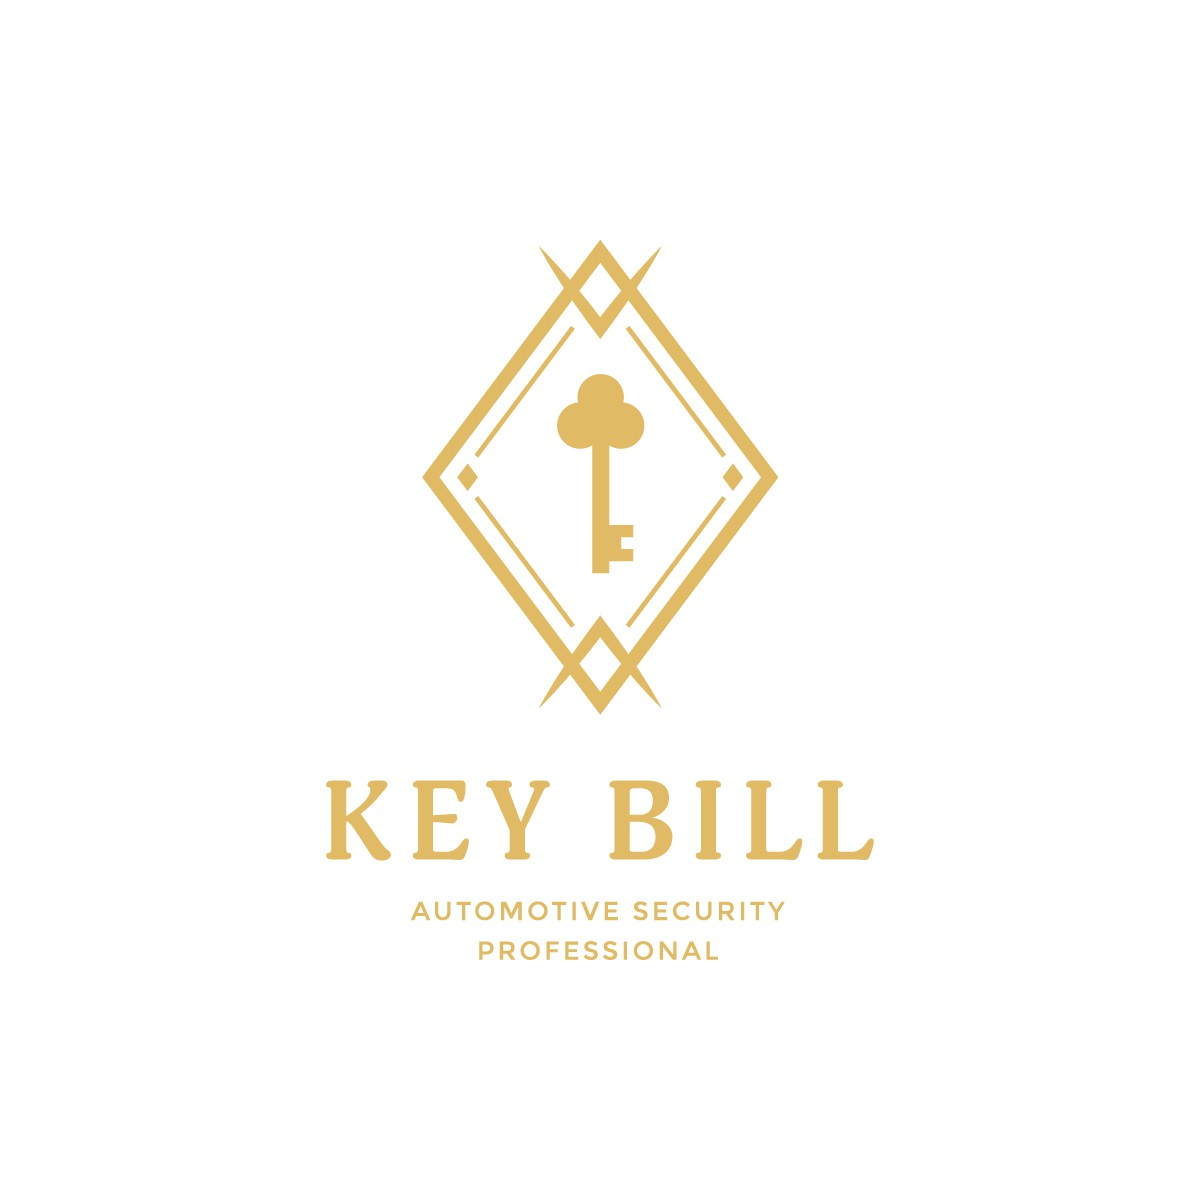 Automotive Locksmith professional seeks luxurious branding for high end clients